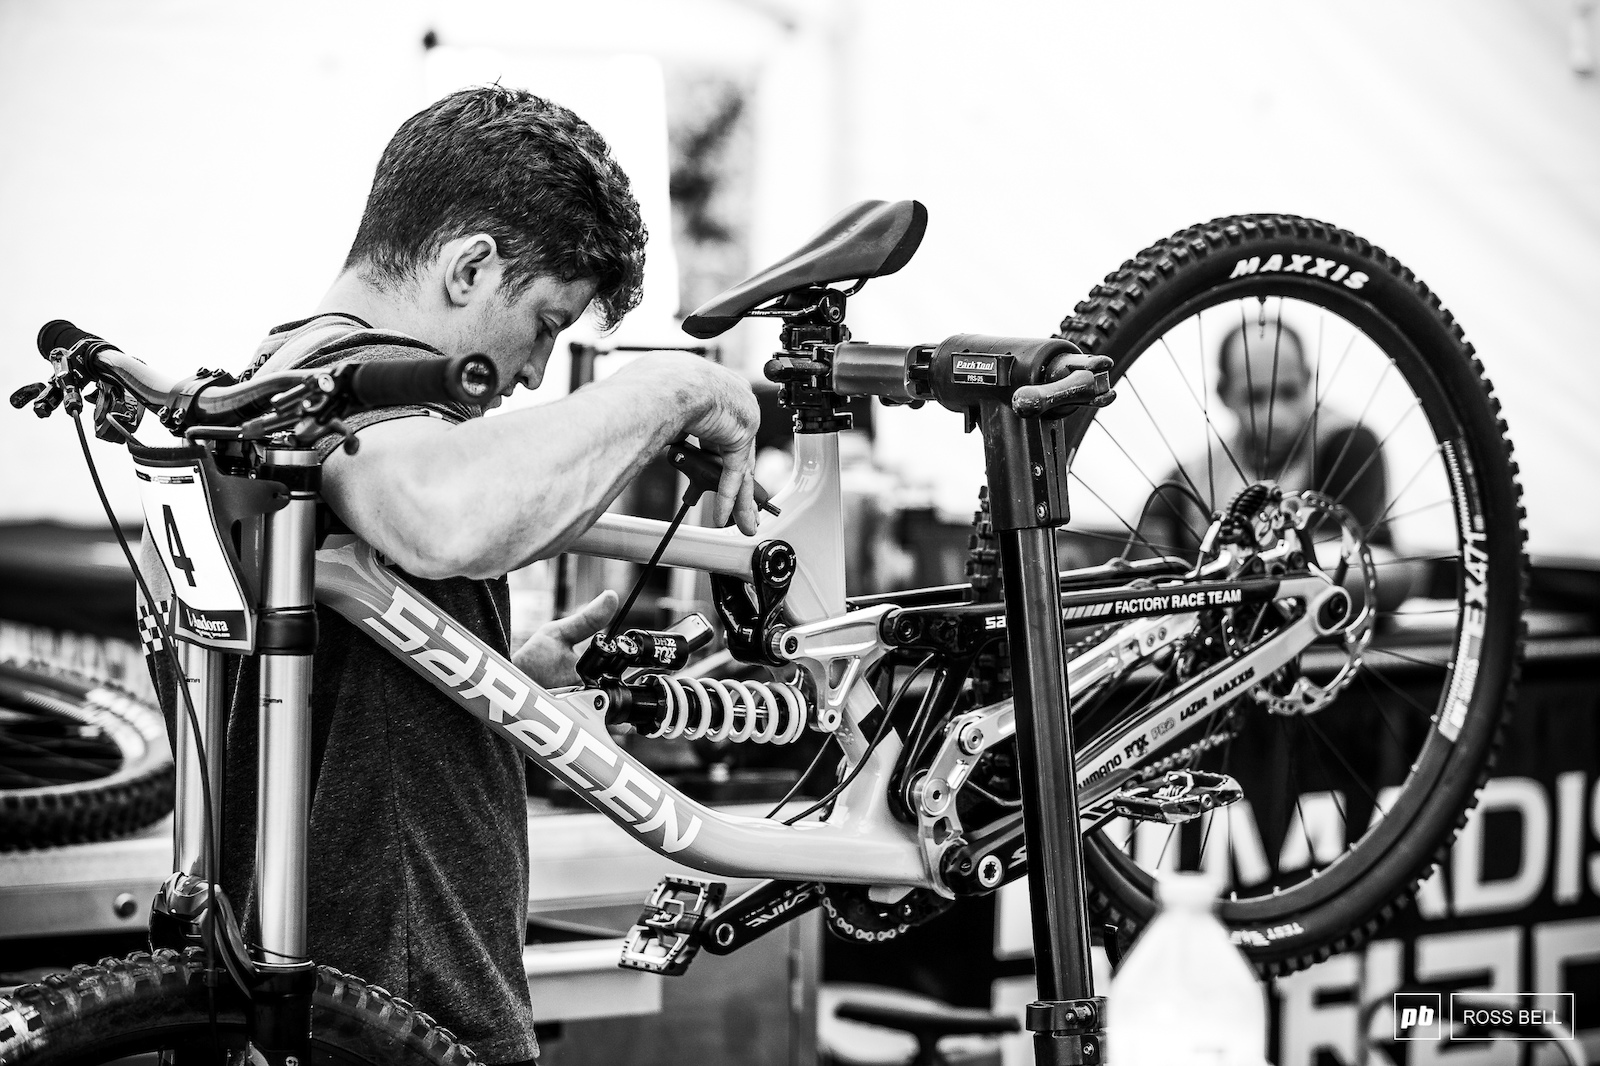 Danny Hart s mechanic Scotty Mears counting clicks.